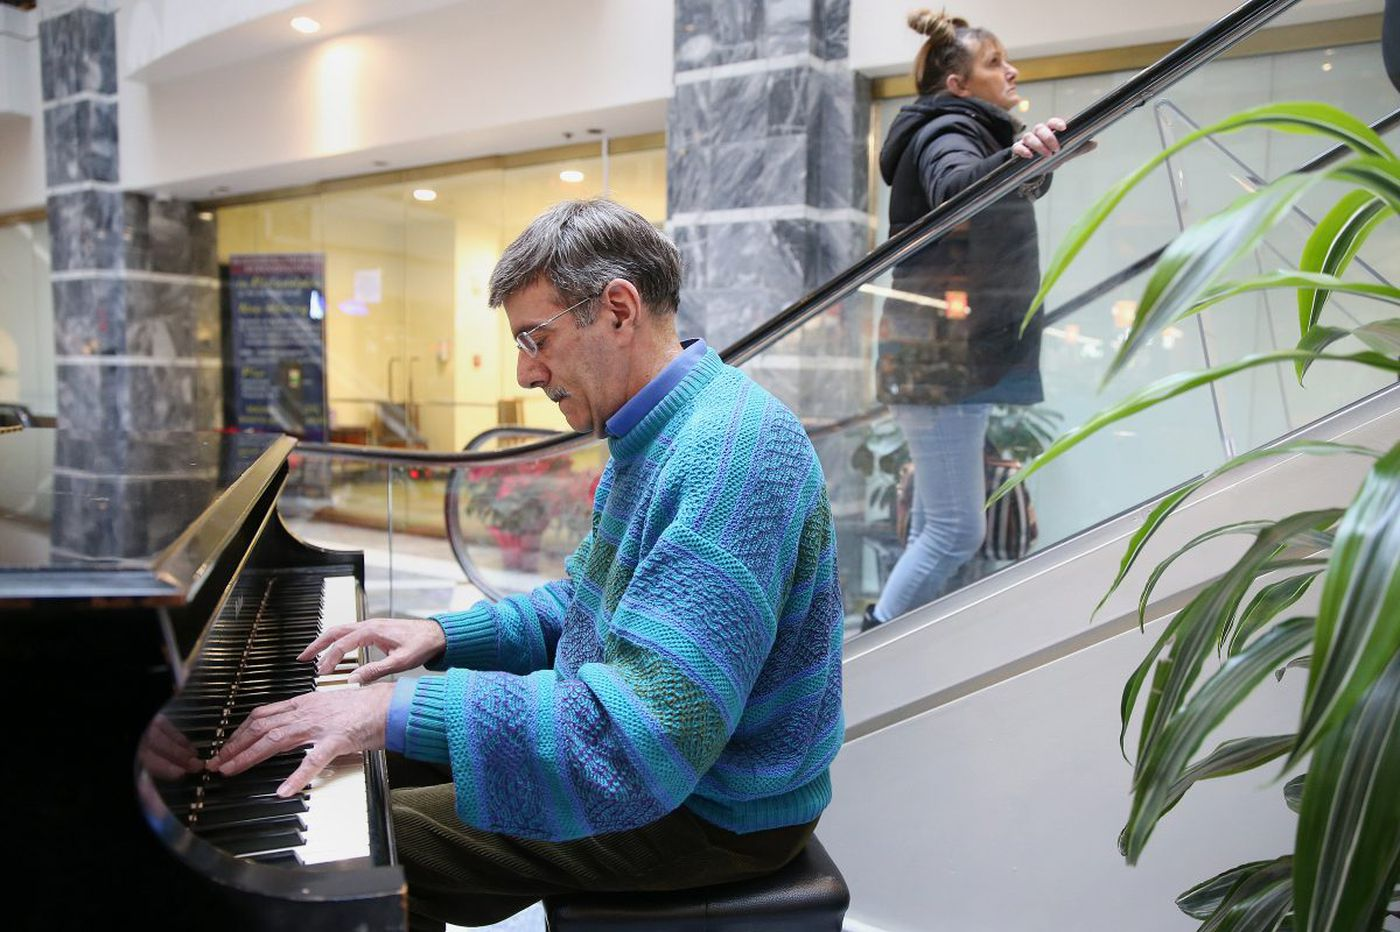 'You can make people happy,' says accountant-turned-piano man | We the People